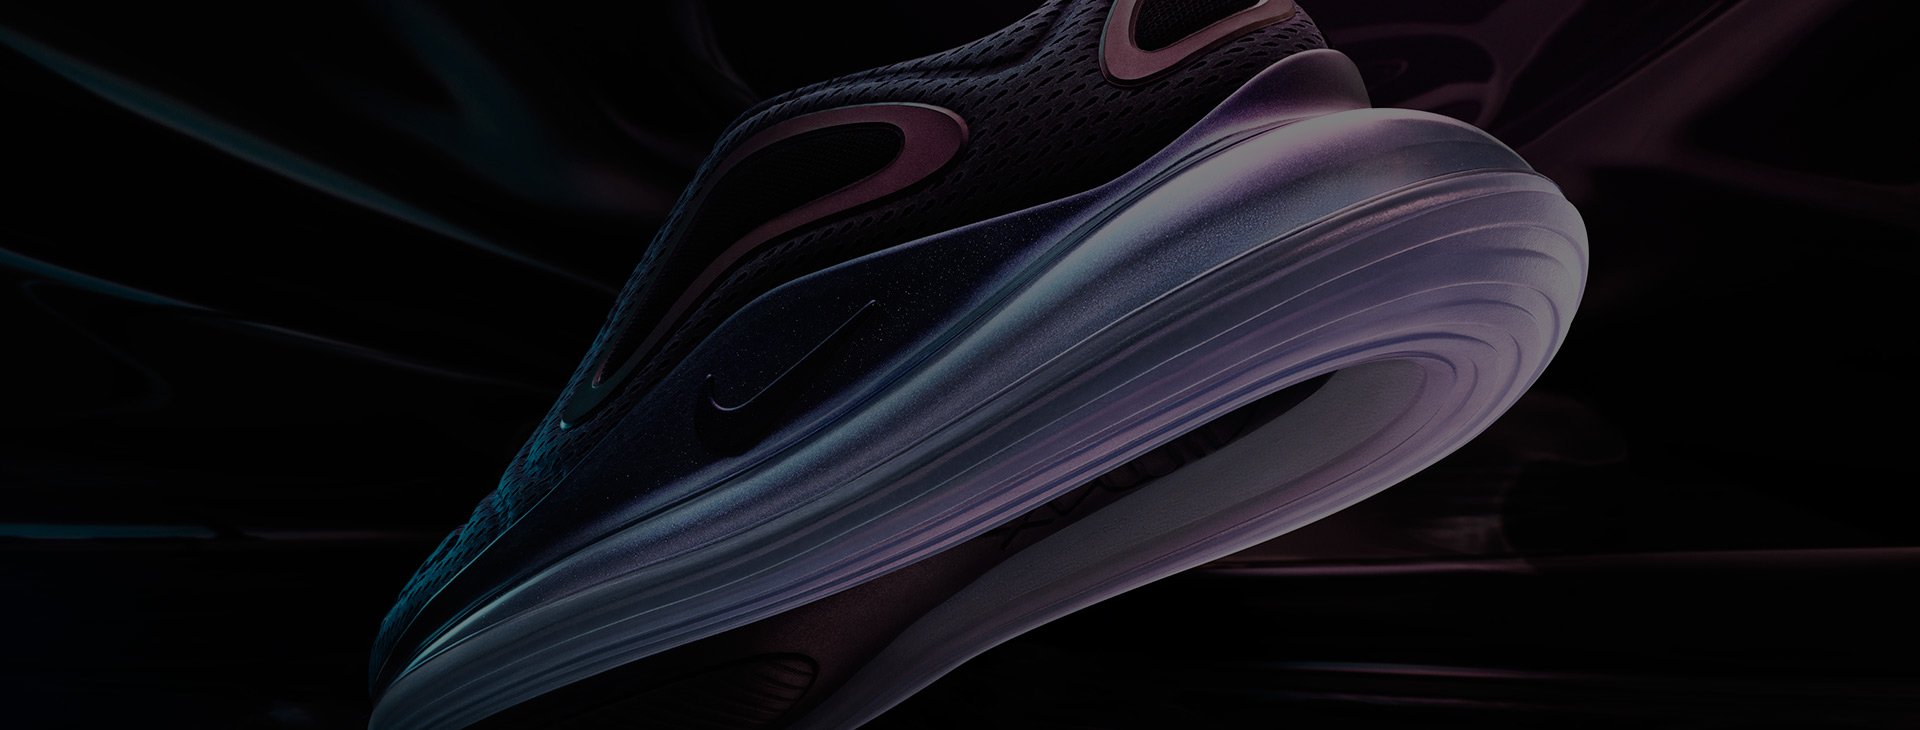 Nike And The AirMax 720 Are Breathing Fresh Air In A Congested Industry b874555a2